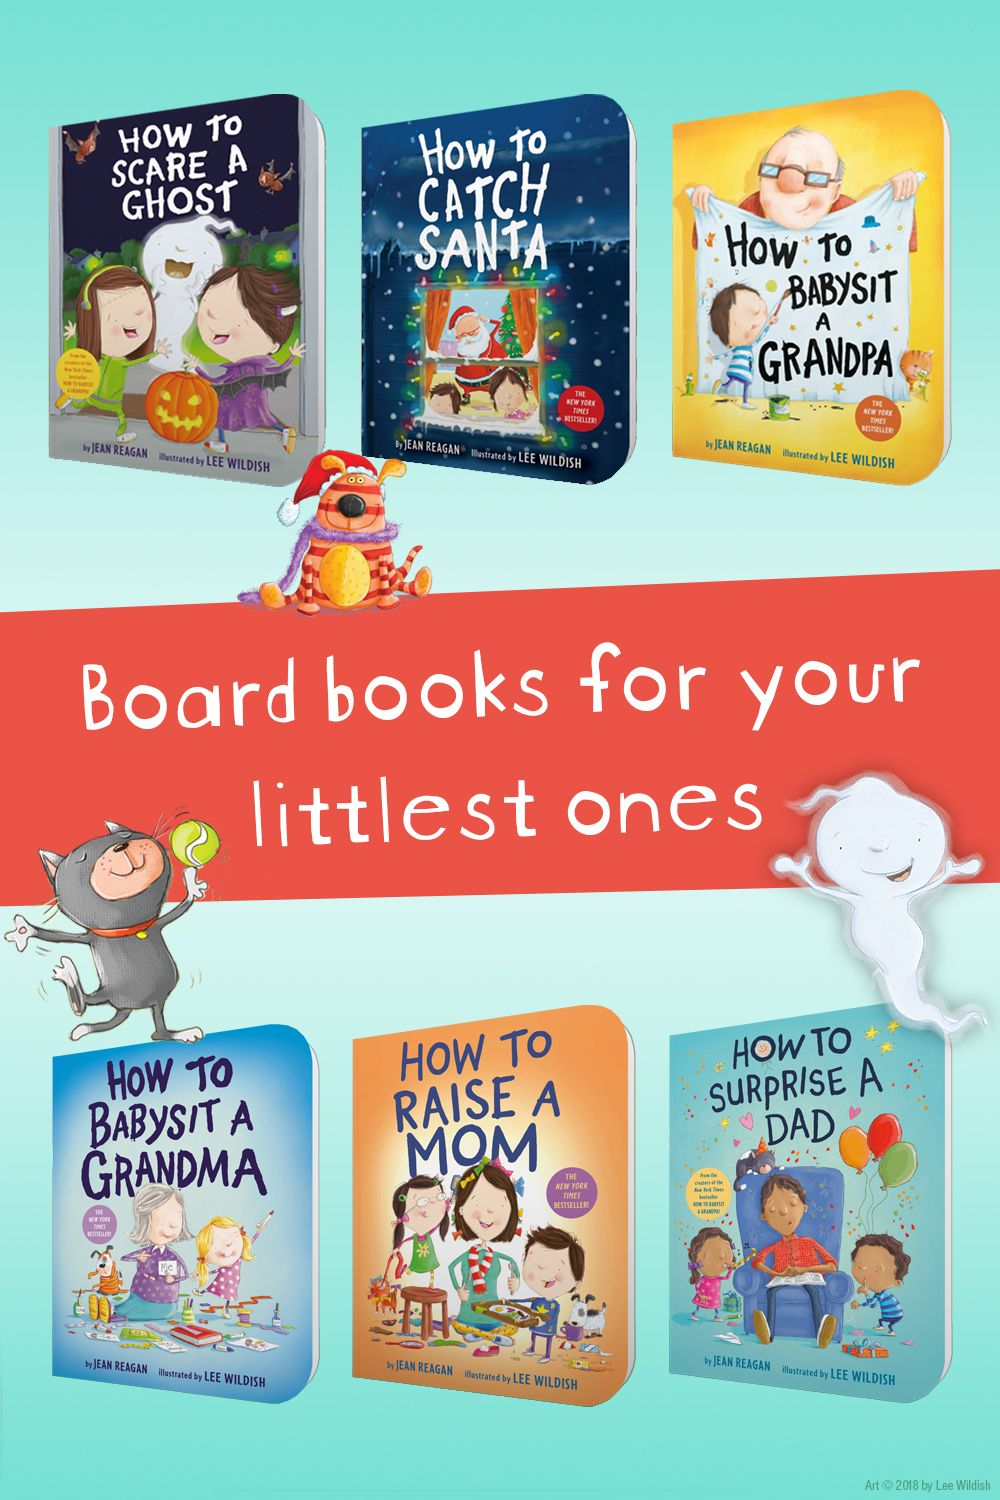 Enjoy this bestselling series with your little ones